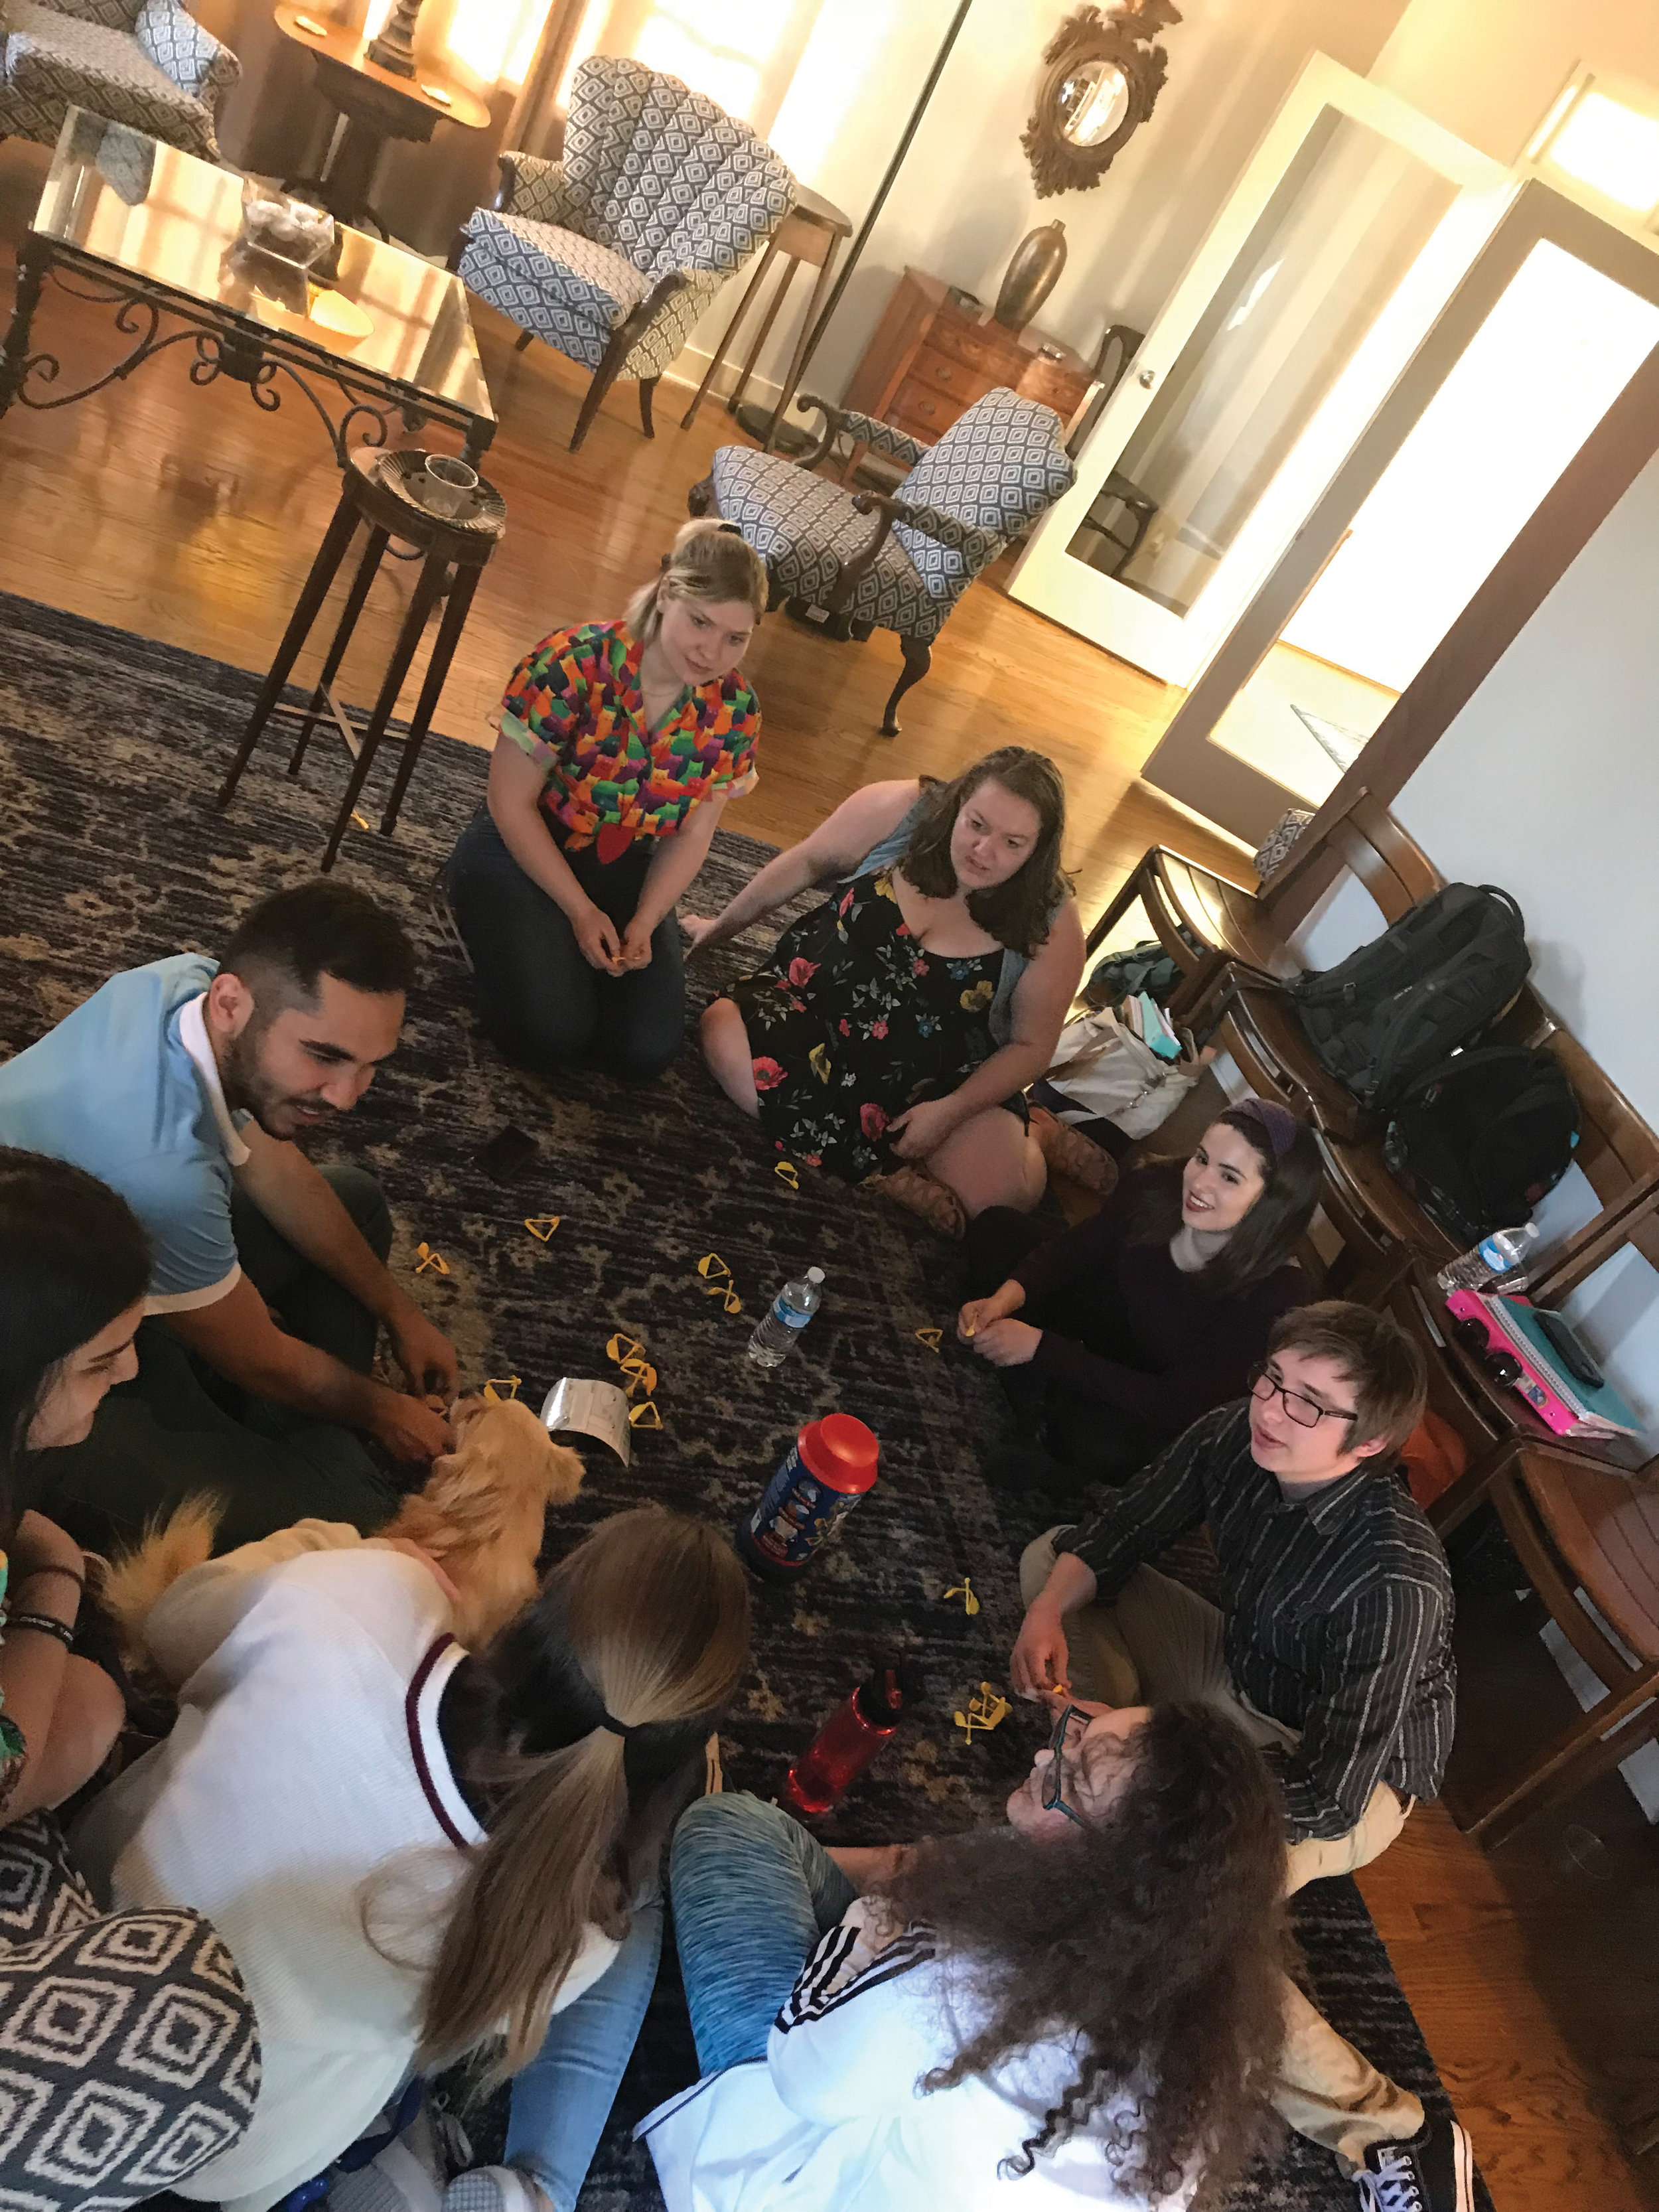 Gonzalez invites students into Hartley House for game nights and other activities to bring together the College community.